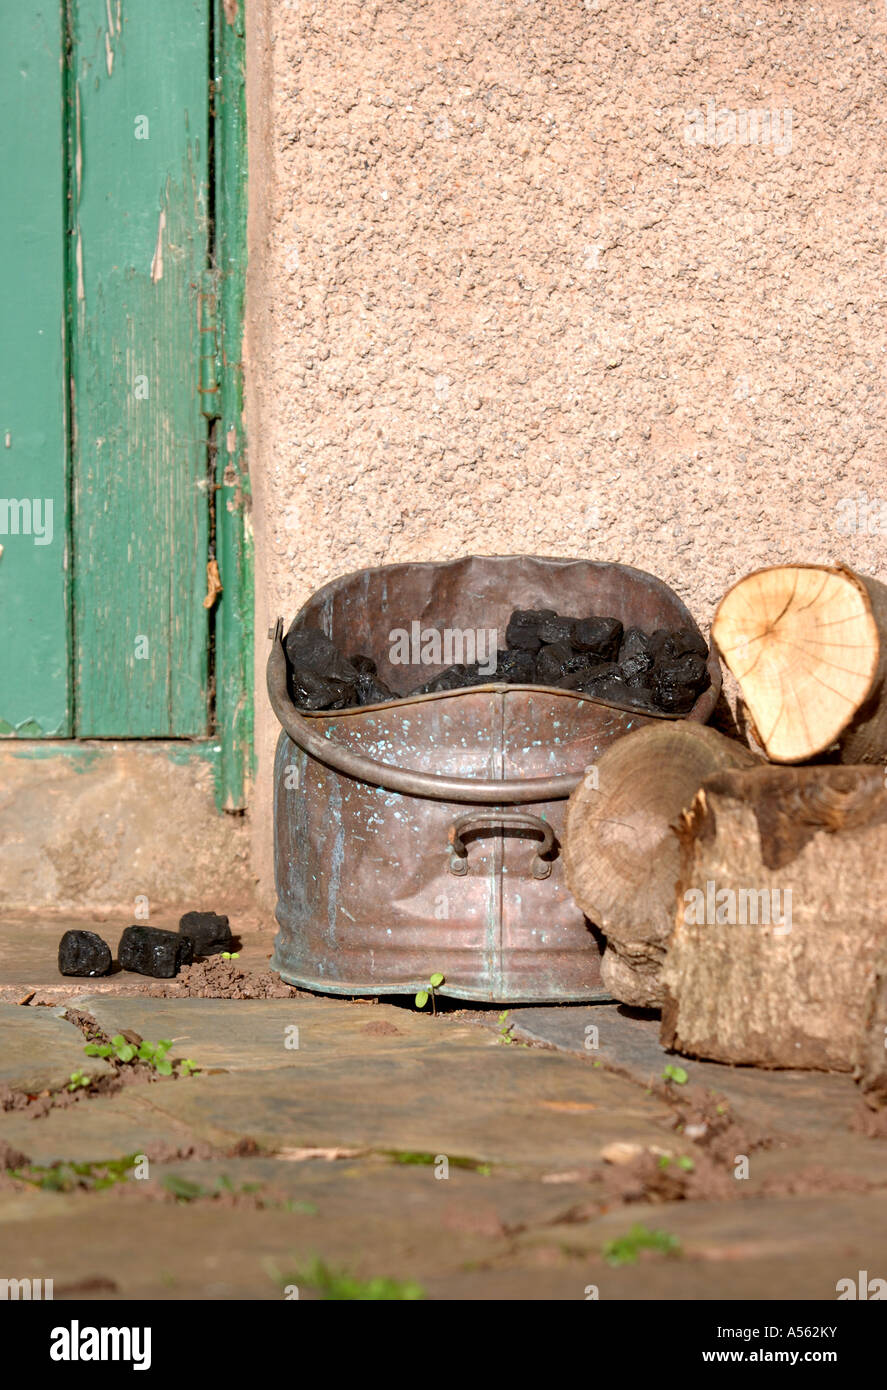 A COAL SCUTTLE BY A BACK DOOR UK & A COAL SCUTTLE BY A BACK DOOR UK Stock Photo: 11208974 - Alamy